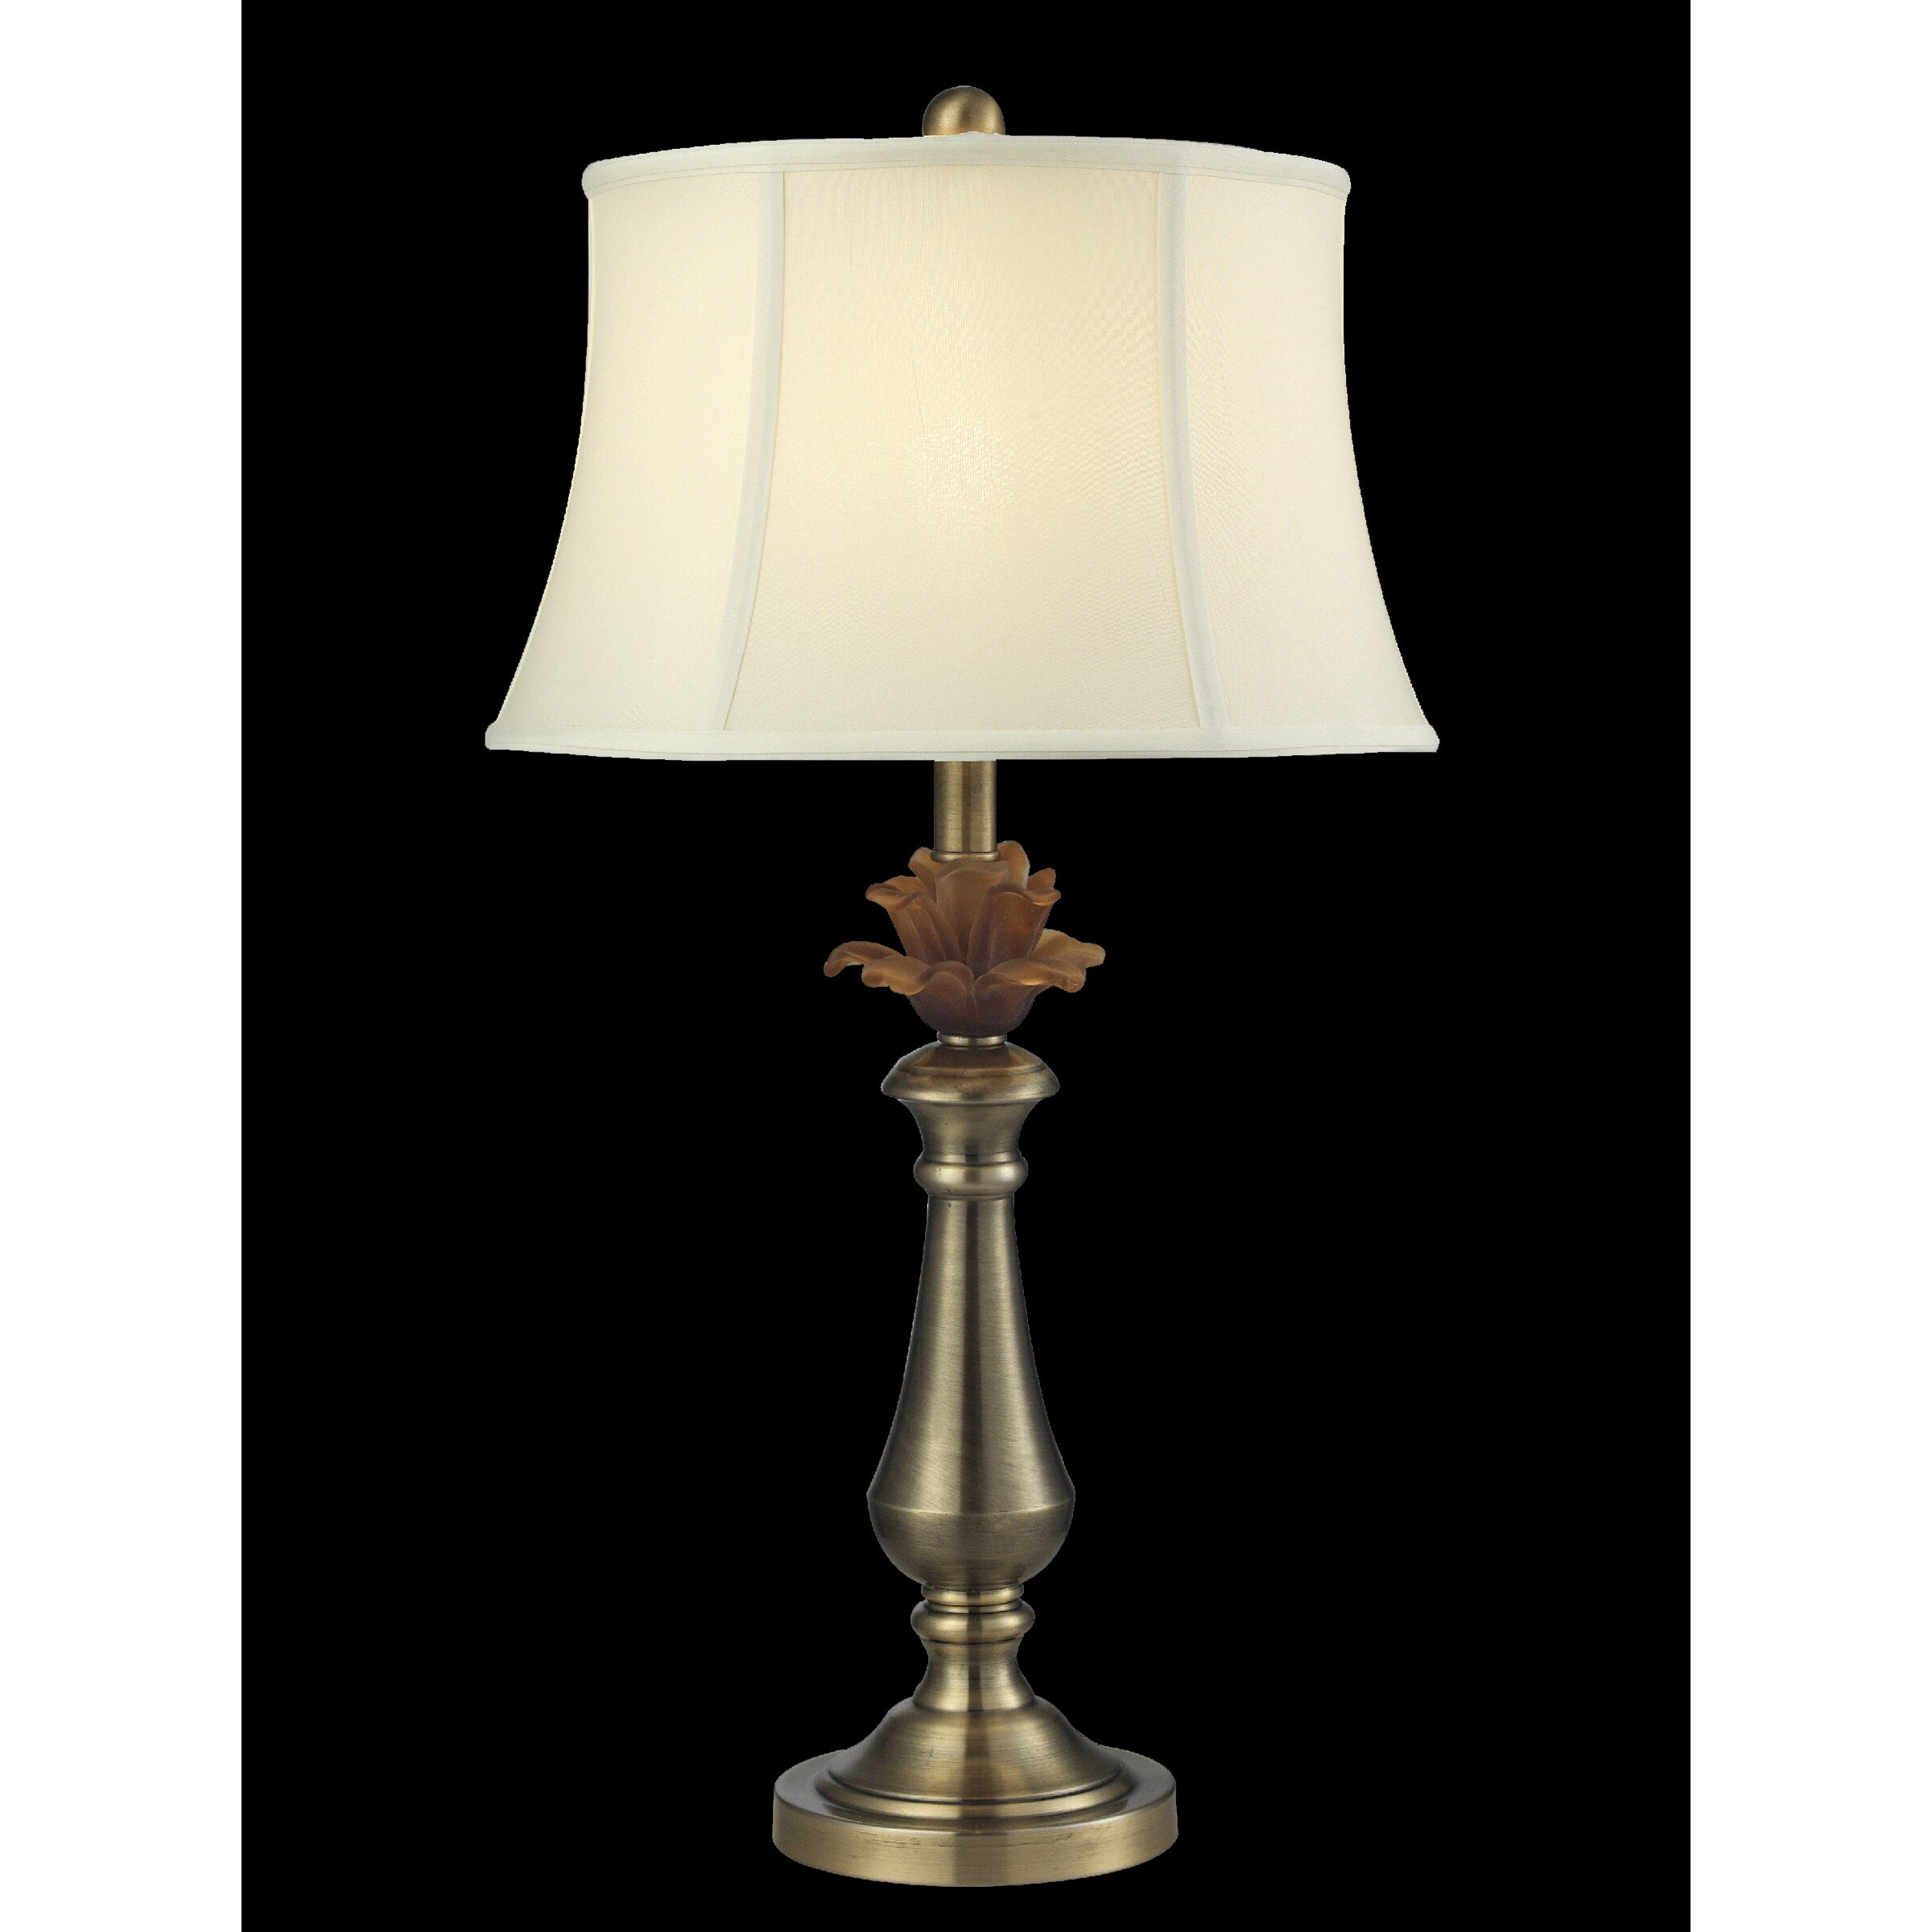 dale tiffany flower 26 h table lamp with empire shade. Black Bedroom Furniture Sets. Home Design Ideas